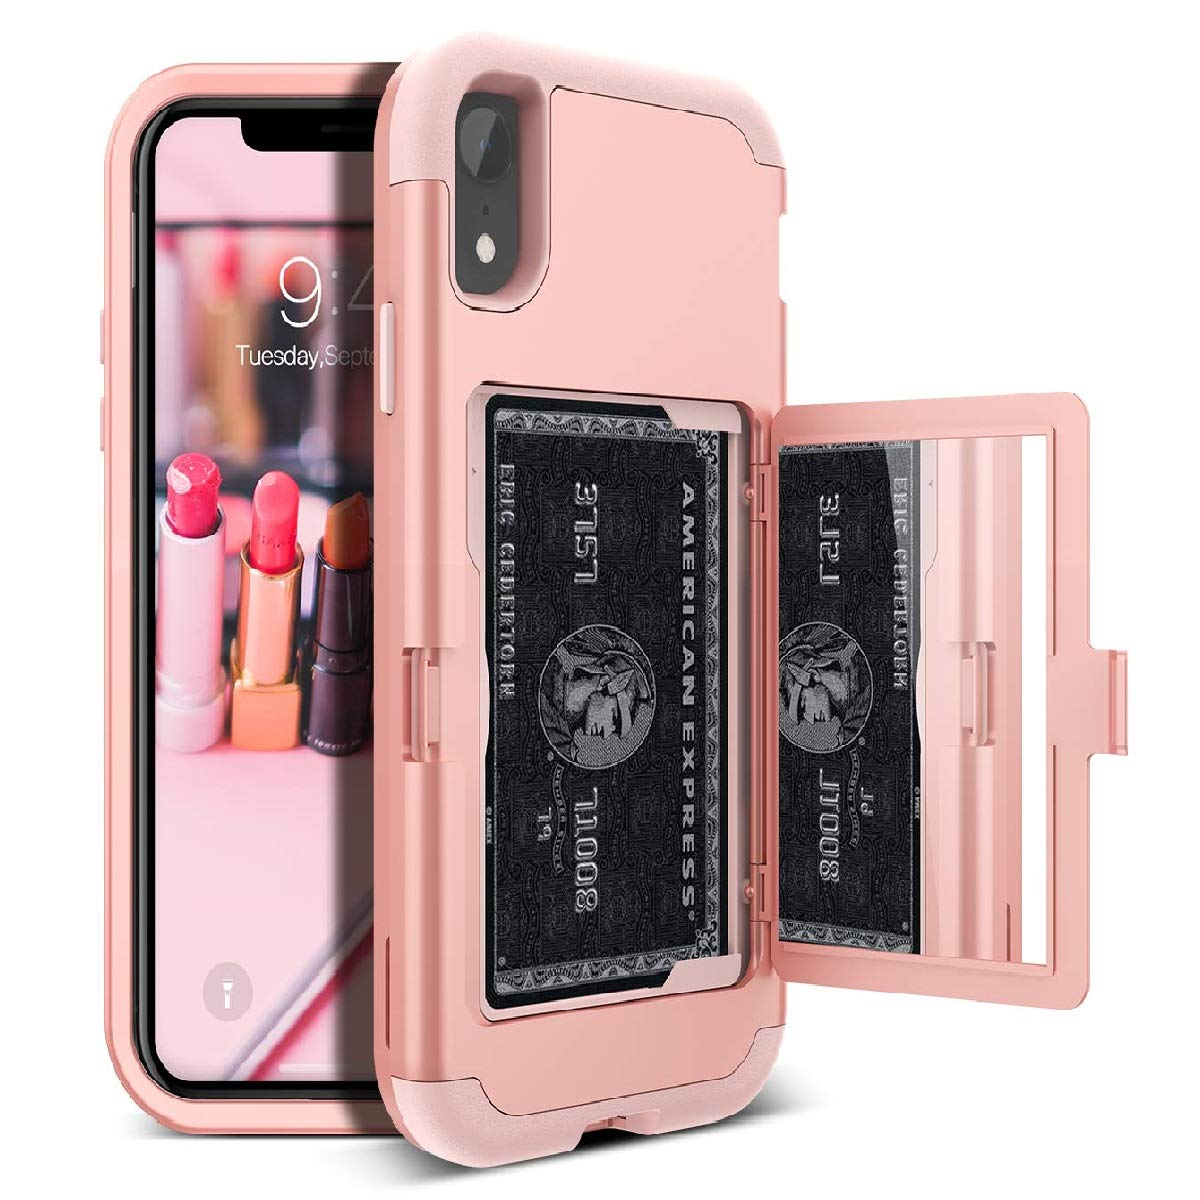 iPhone XR Wallet Case - WeLoveCase Defender Wallet Design with Card Holder and Hidden Back Mirror Three Layer Heavy Duty Protection Shockproof All-round Armor Protective Case for iPhone XR - Rose Gold